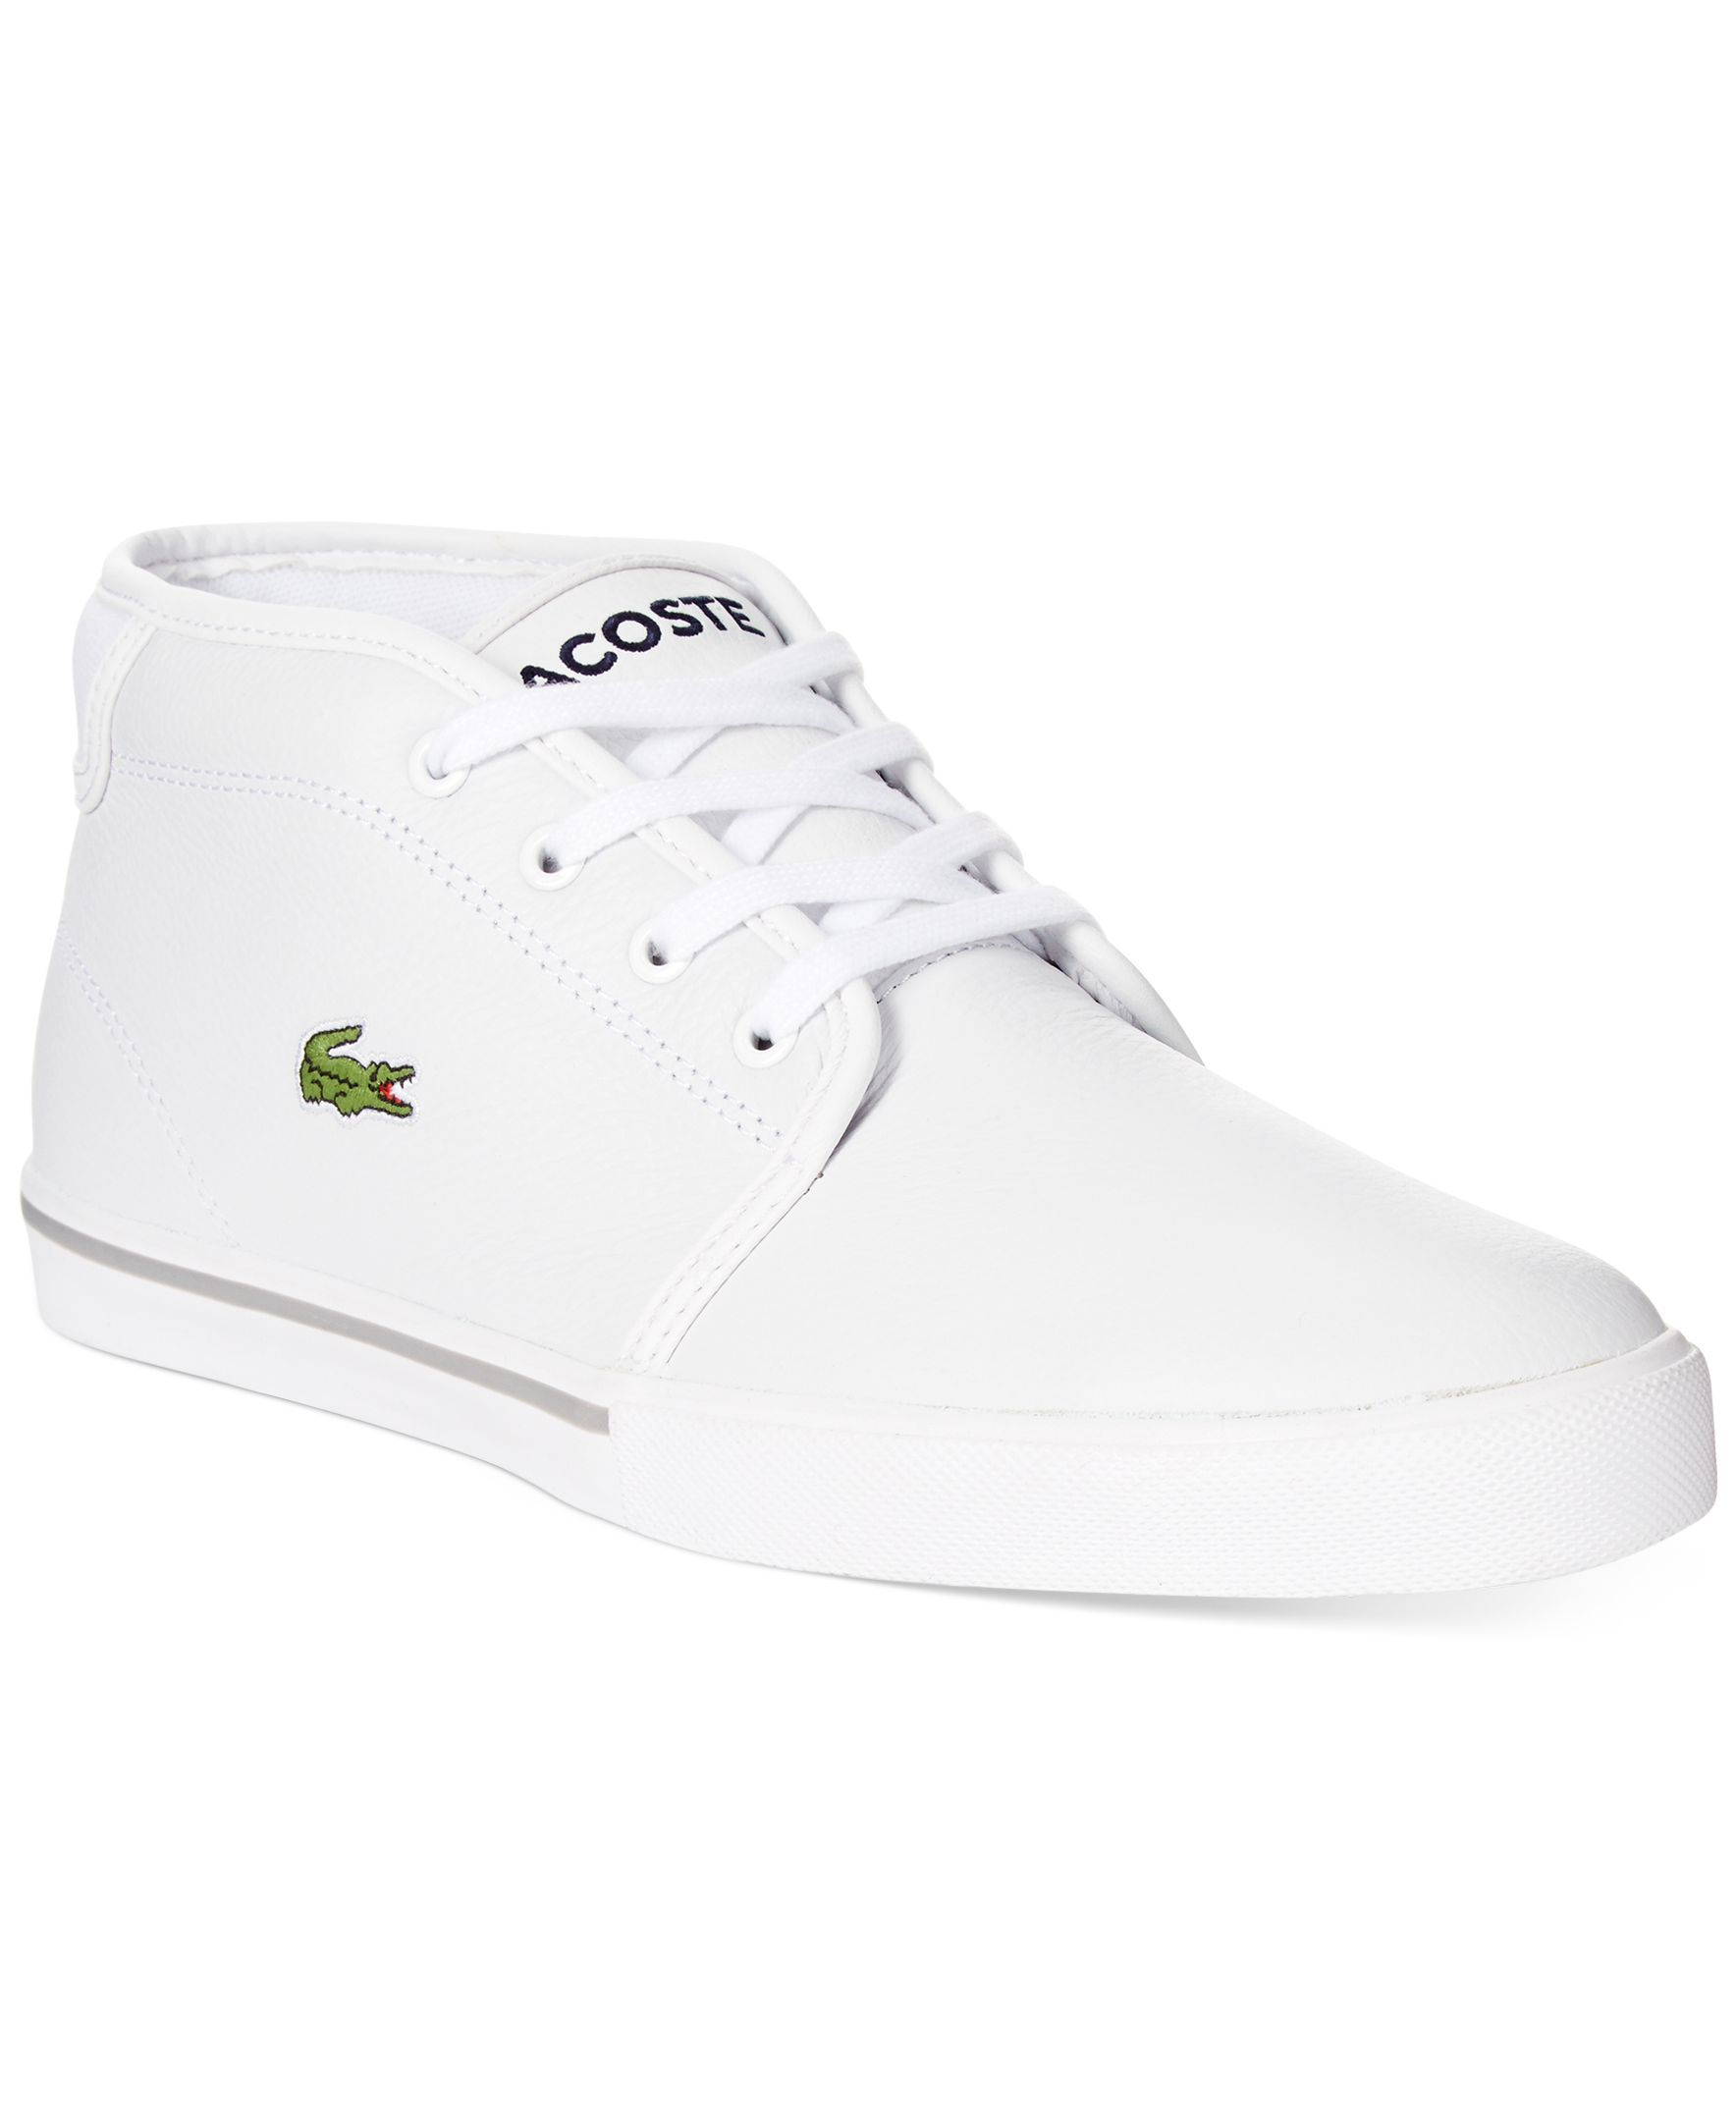 9717fc93e Lacoste Ampthill Lcr Mid Sneakers